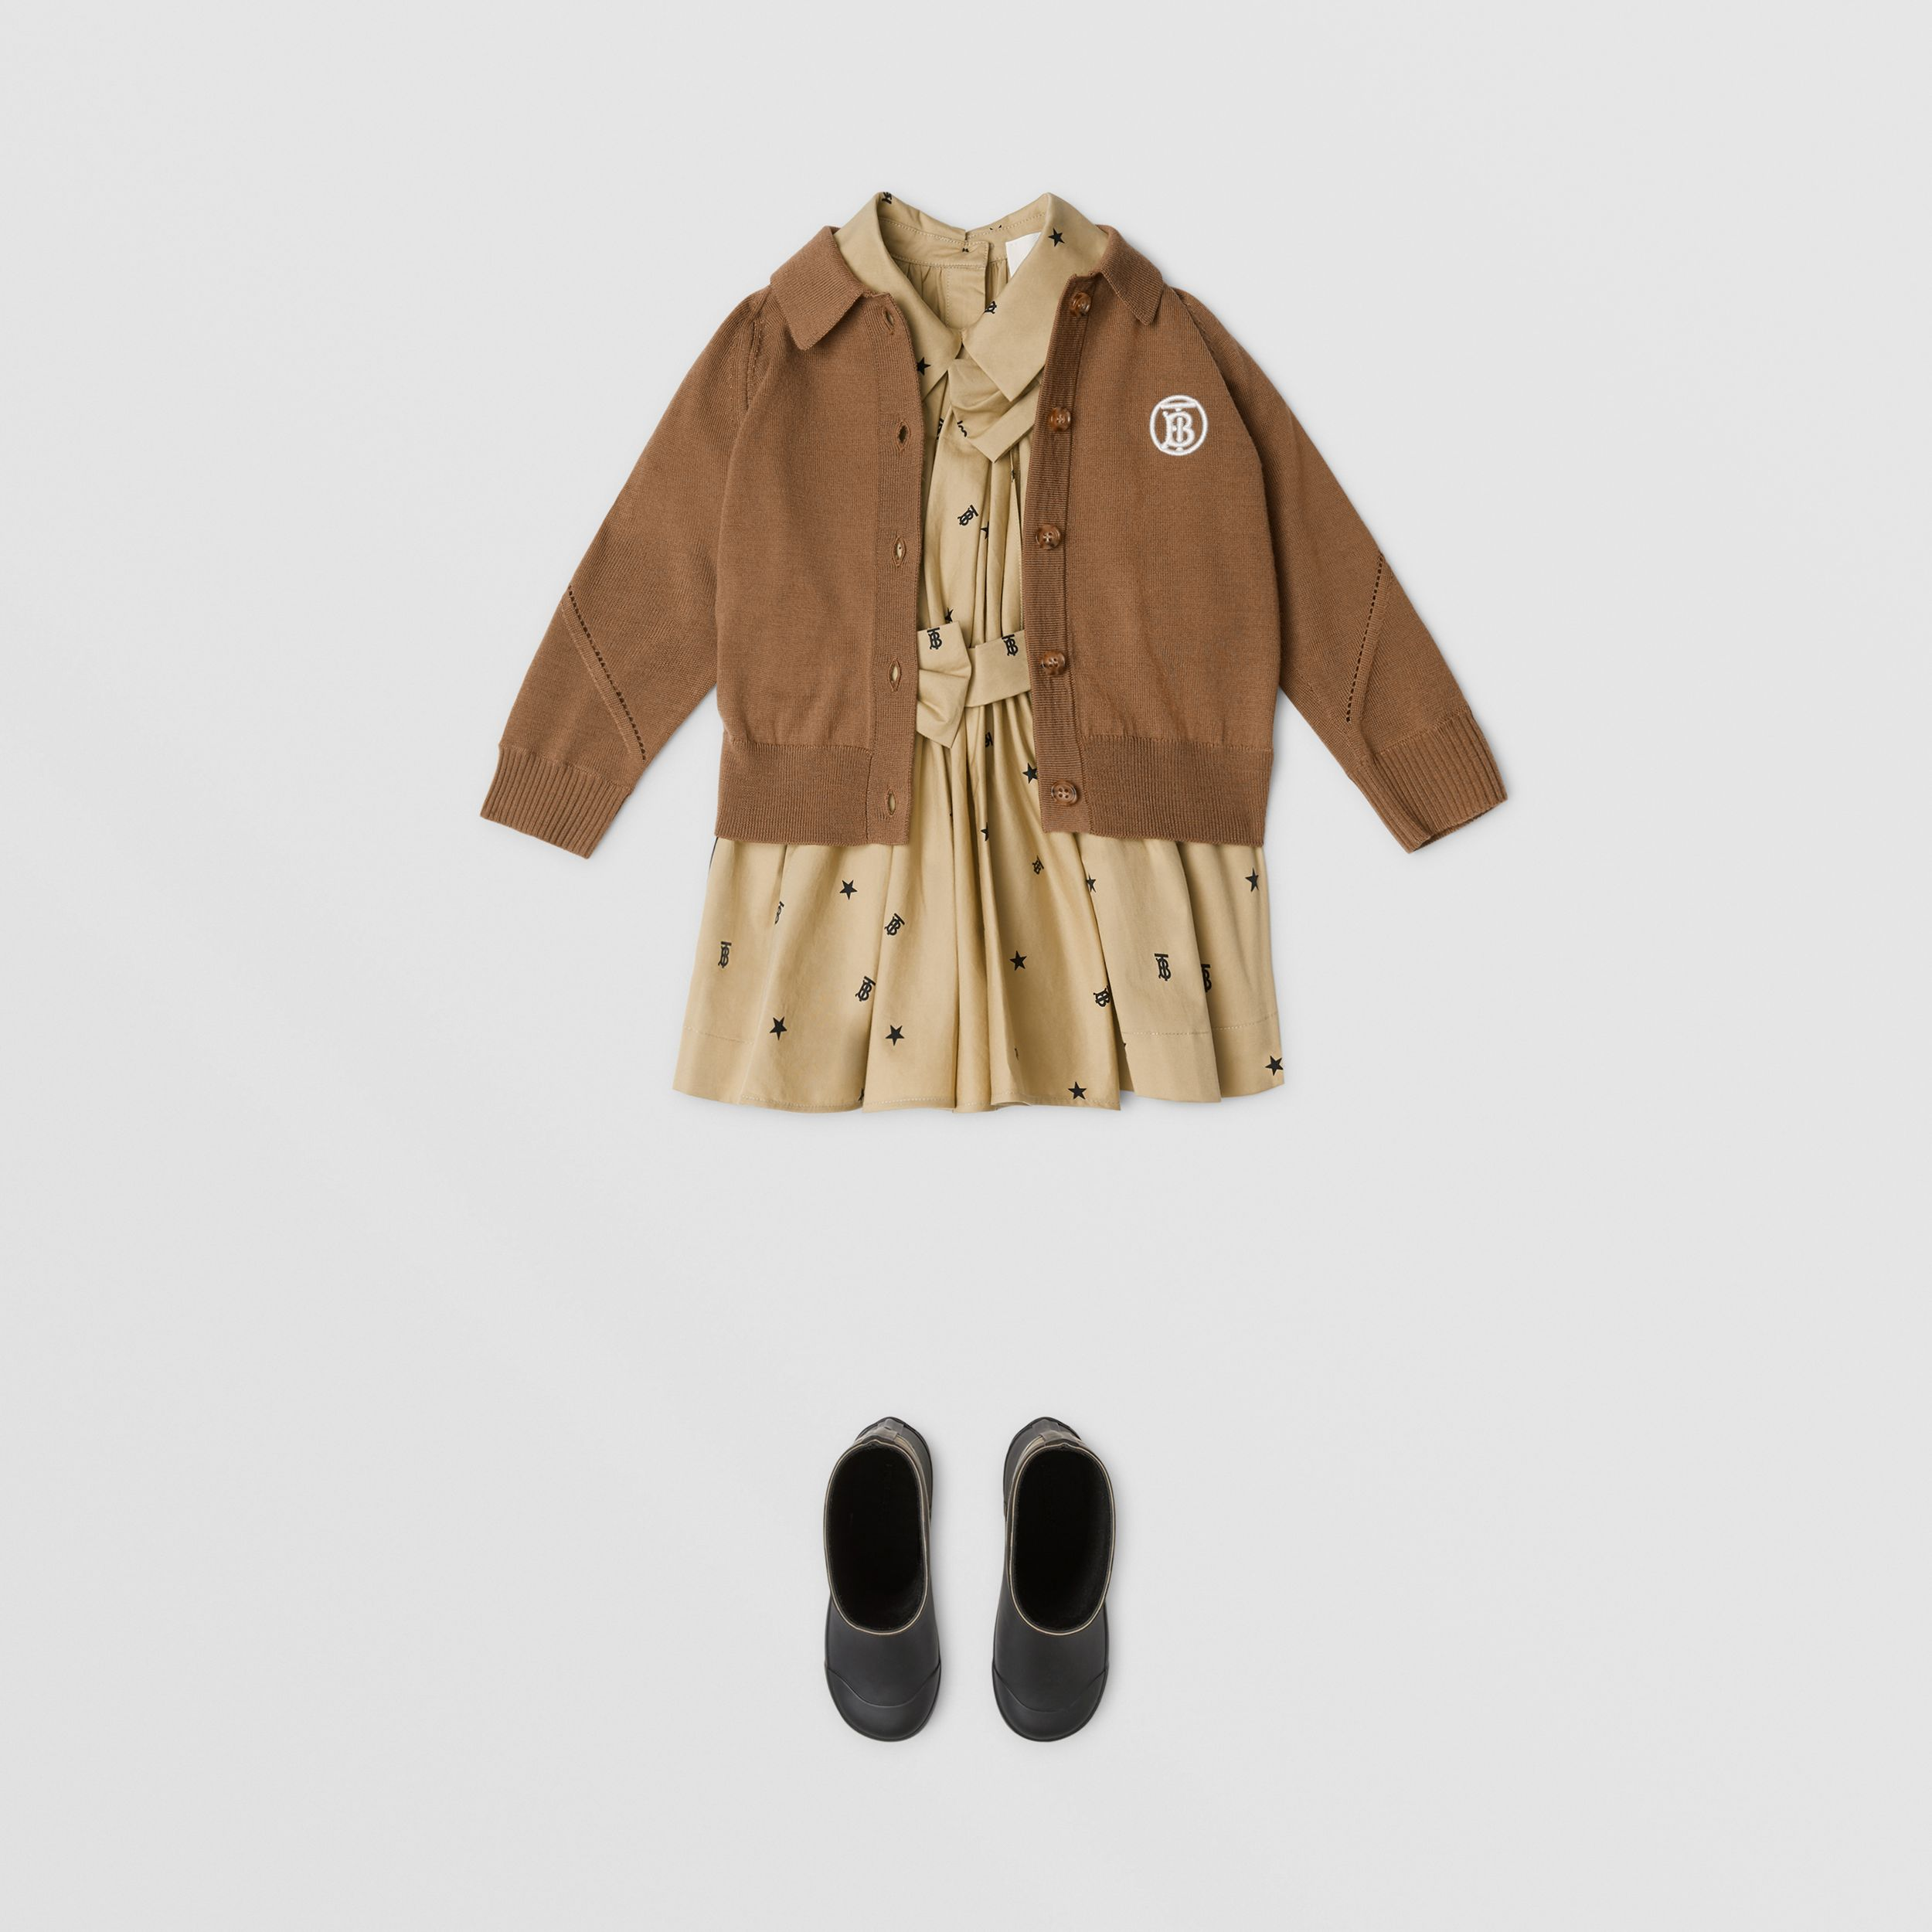 Monogram Motif Merino Wool Cardigan in Oak Brown - Children | Burberry Australia - 3